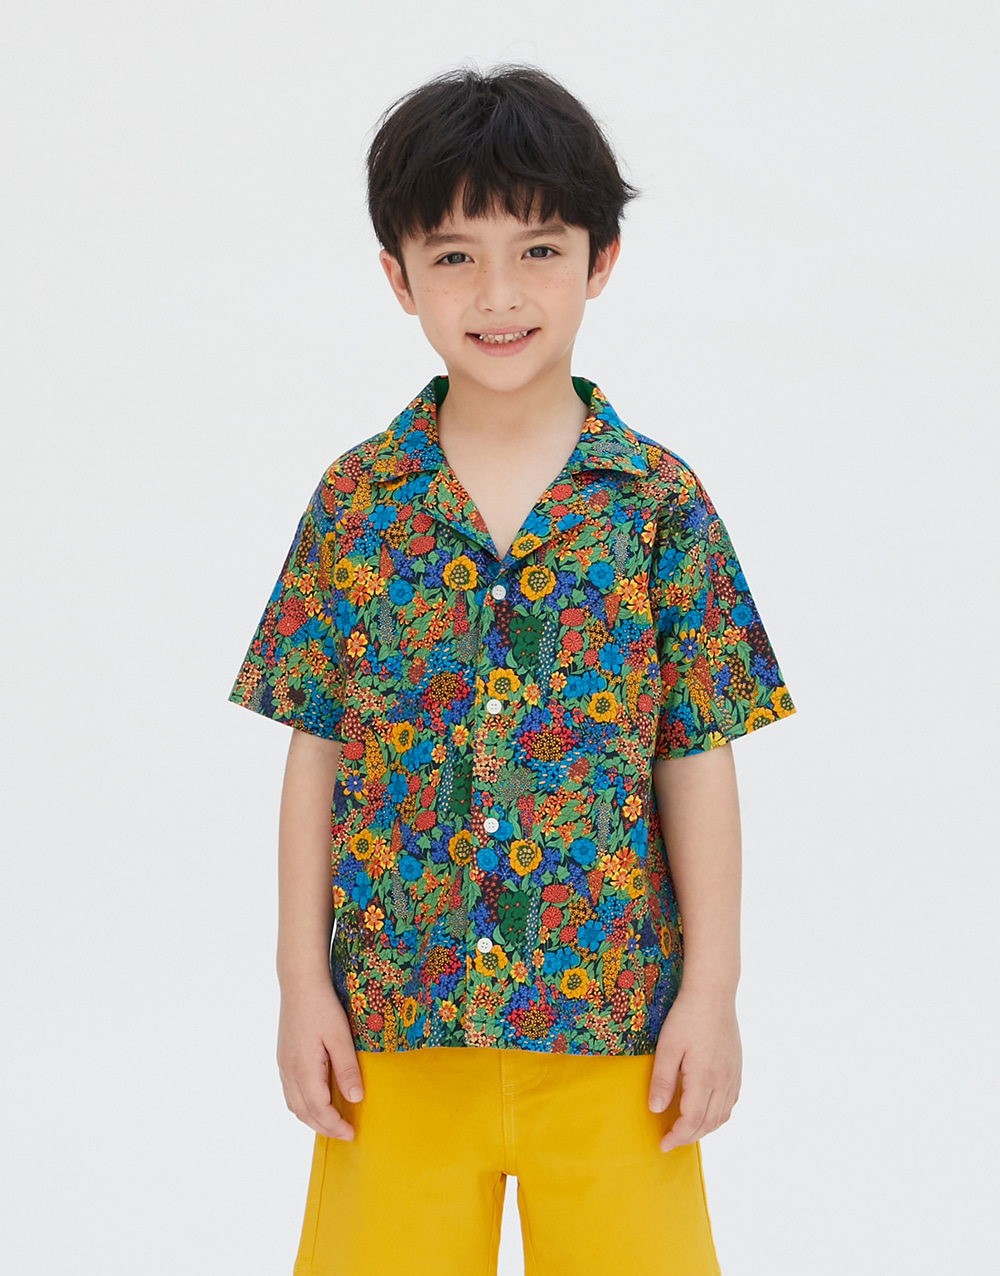 GBH APPAREL KIDS   FLOWER SHIRT